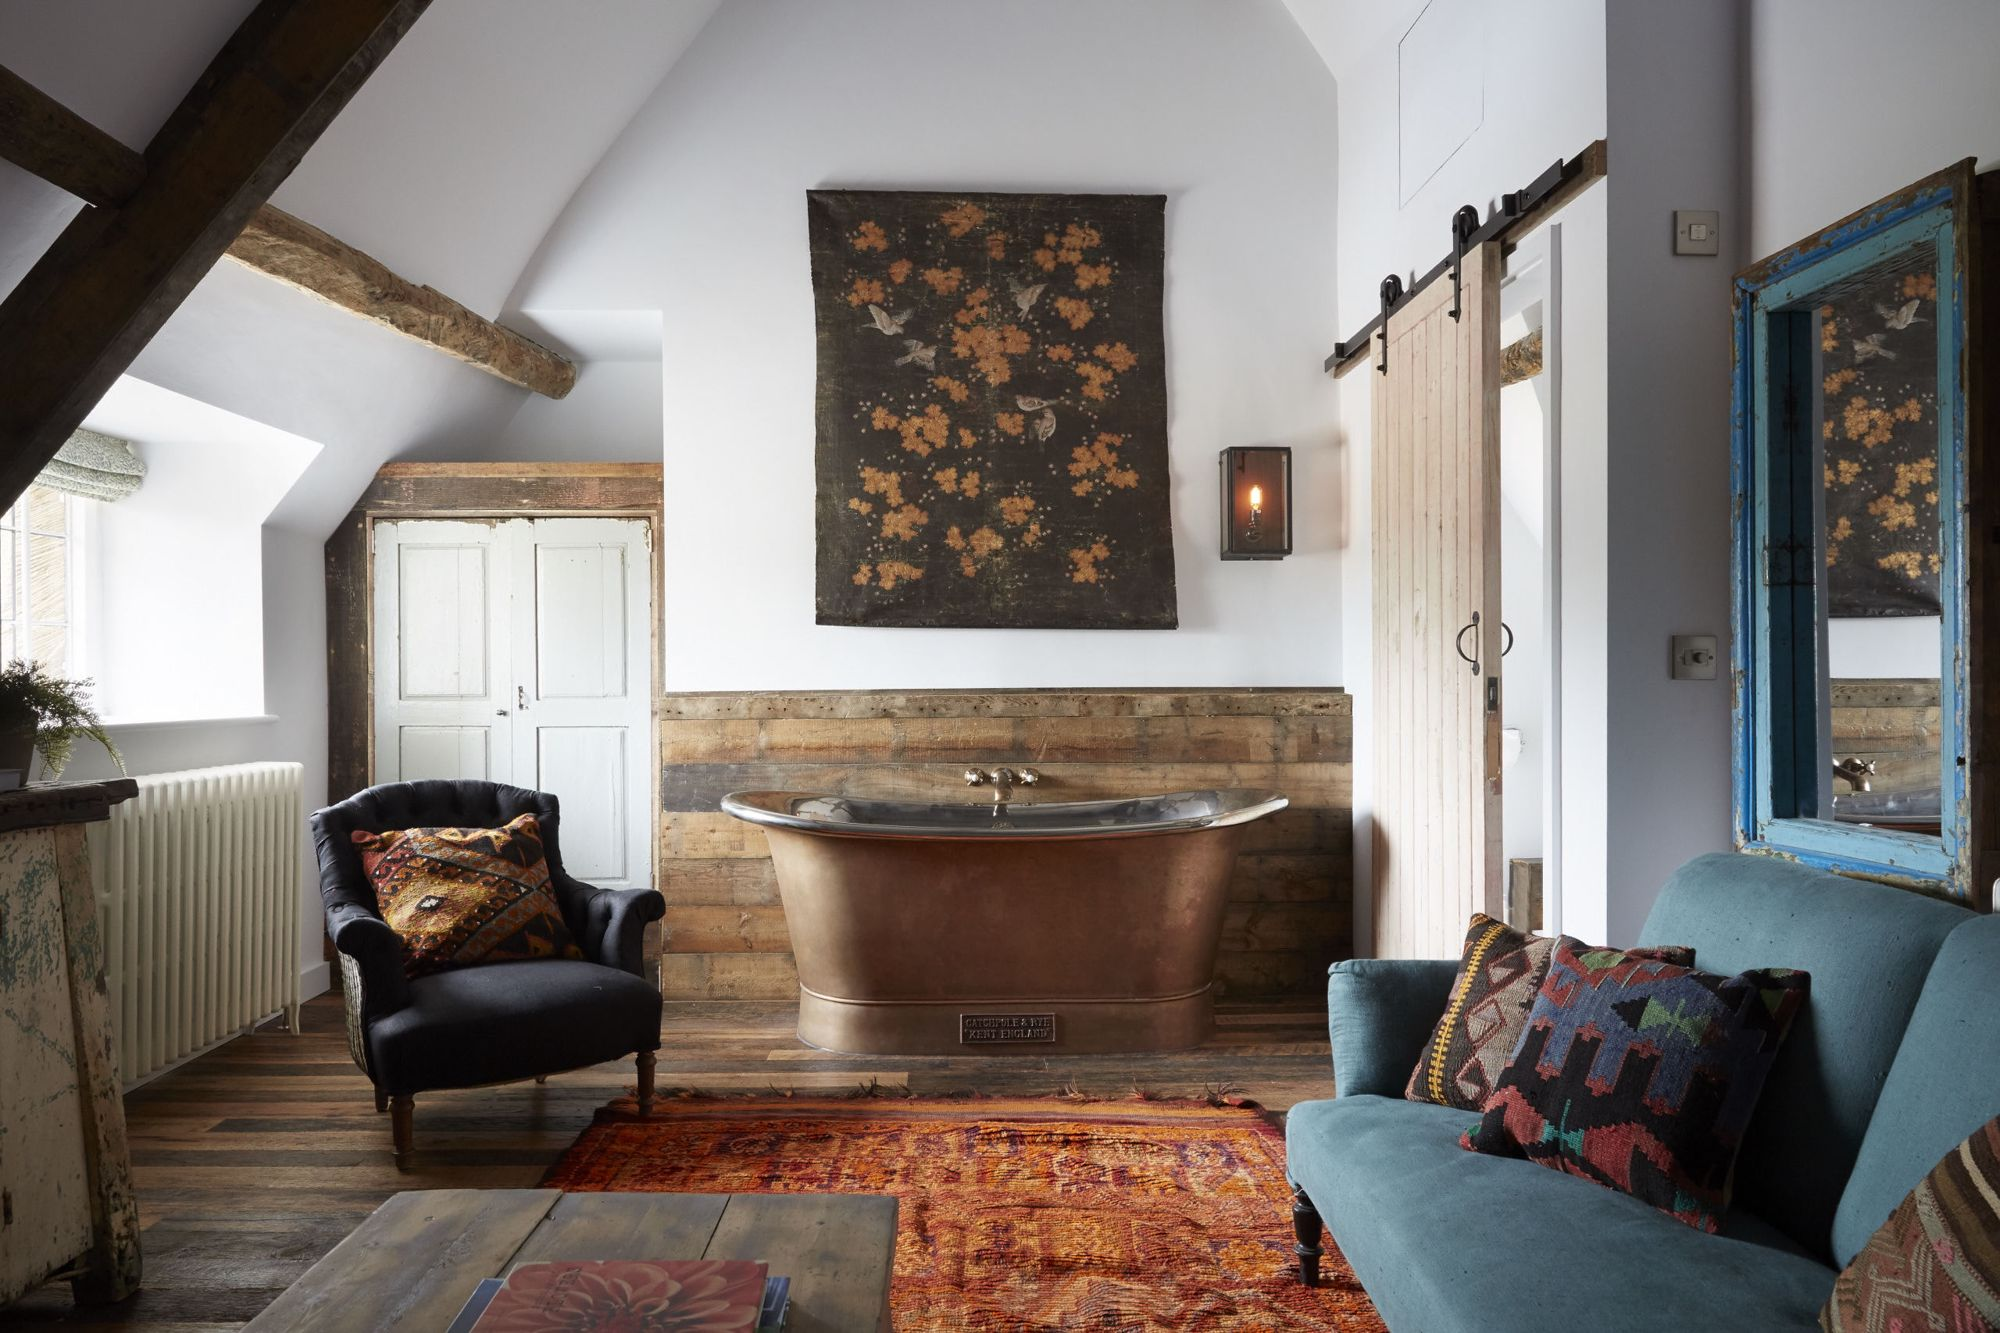 Places to Stay in The Cotswolds holidays at Cool Places